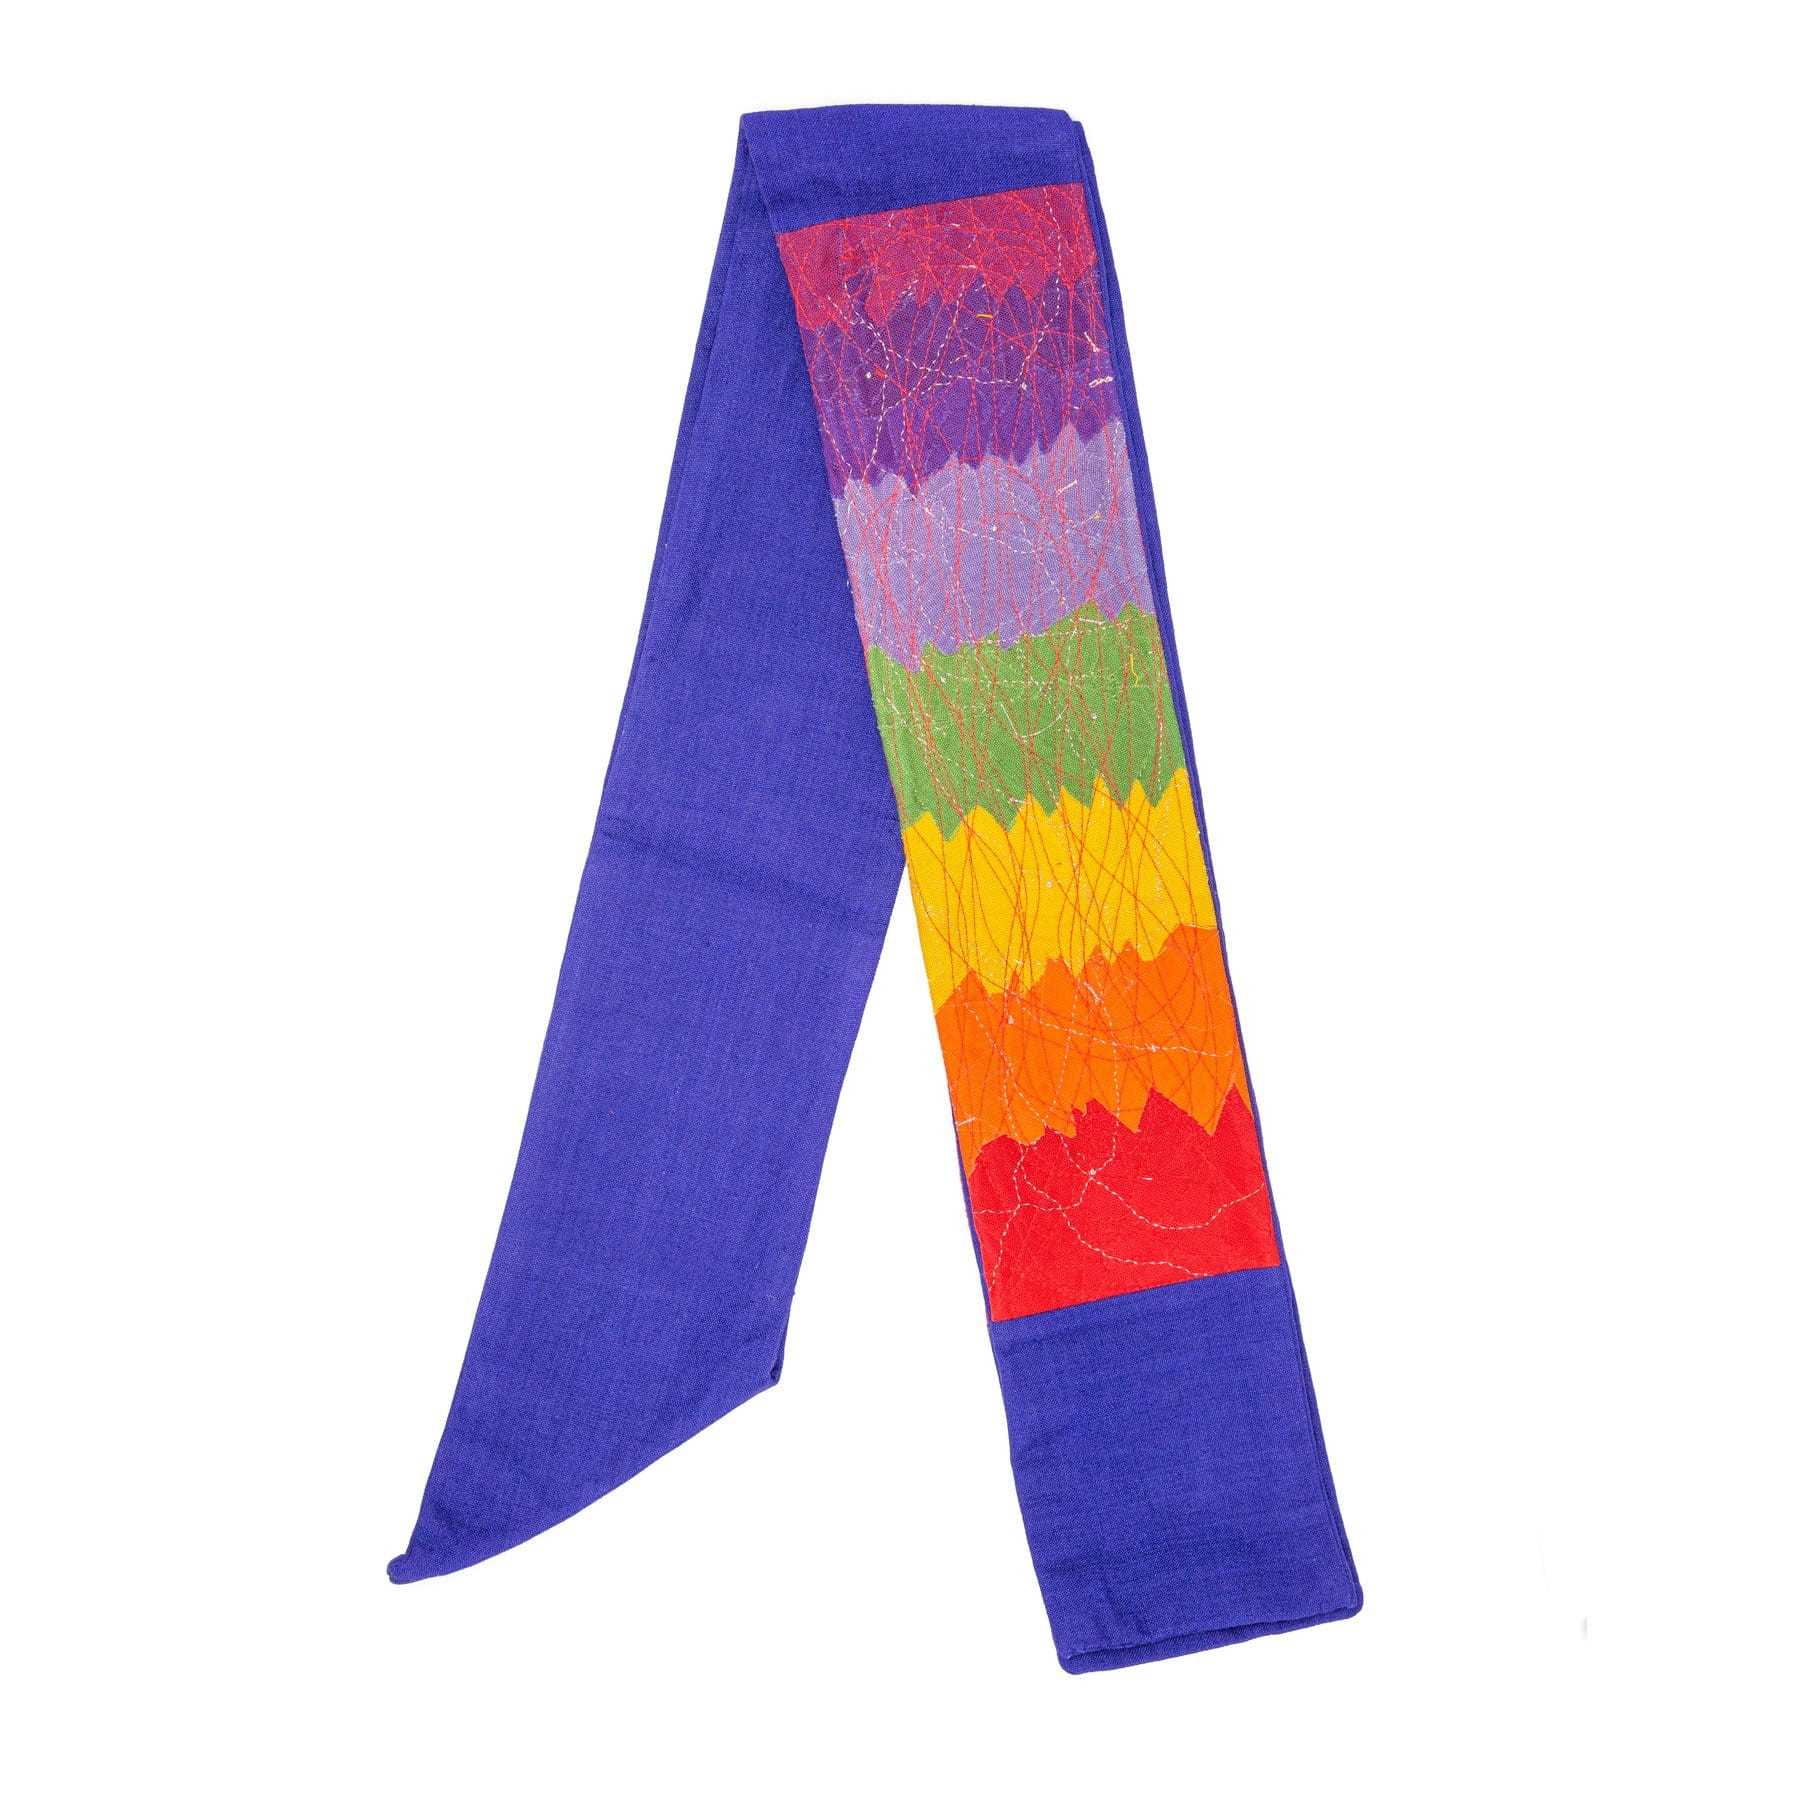 Rainbow and Blue Contemporary Clerical Stole